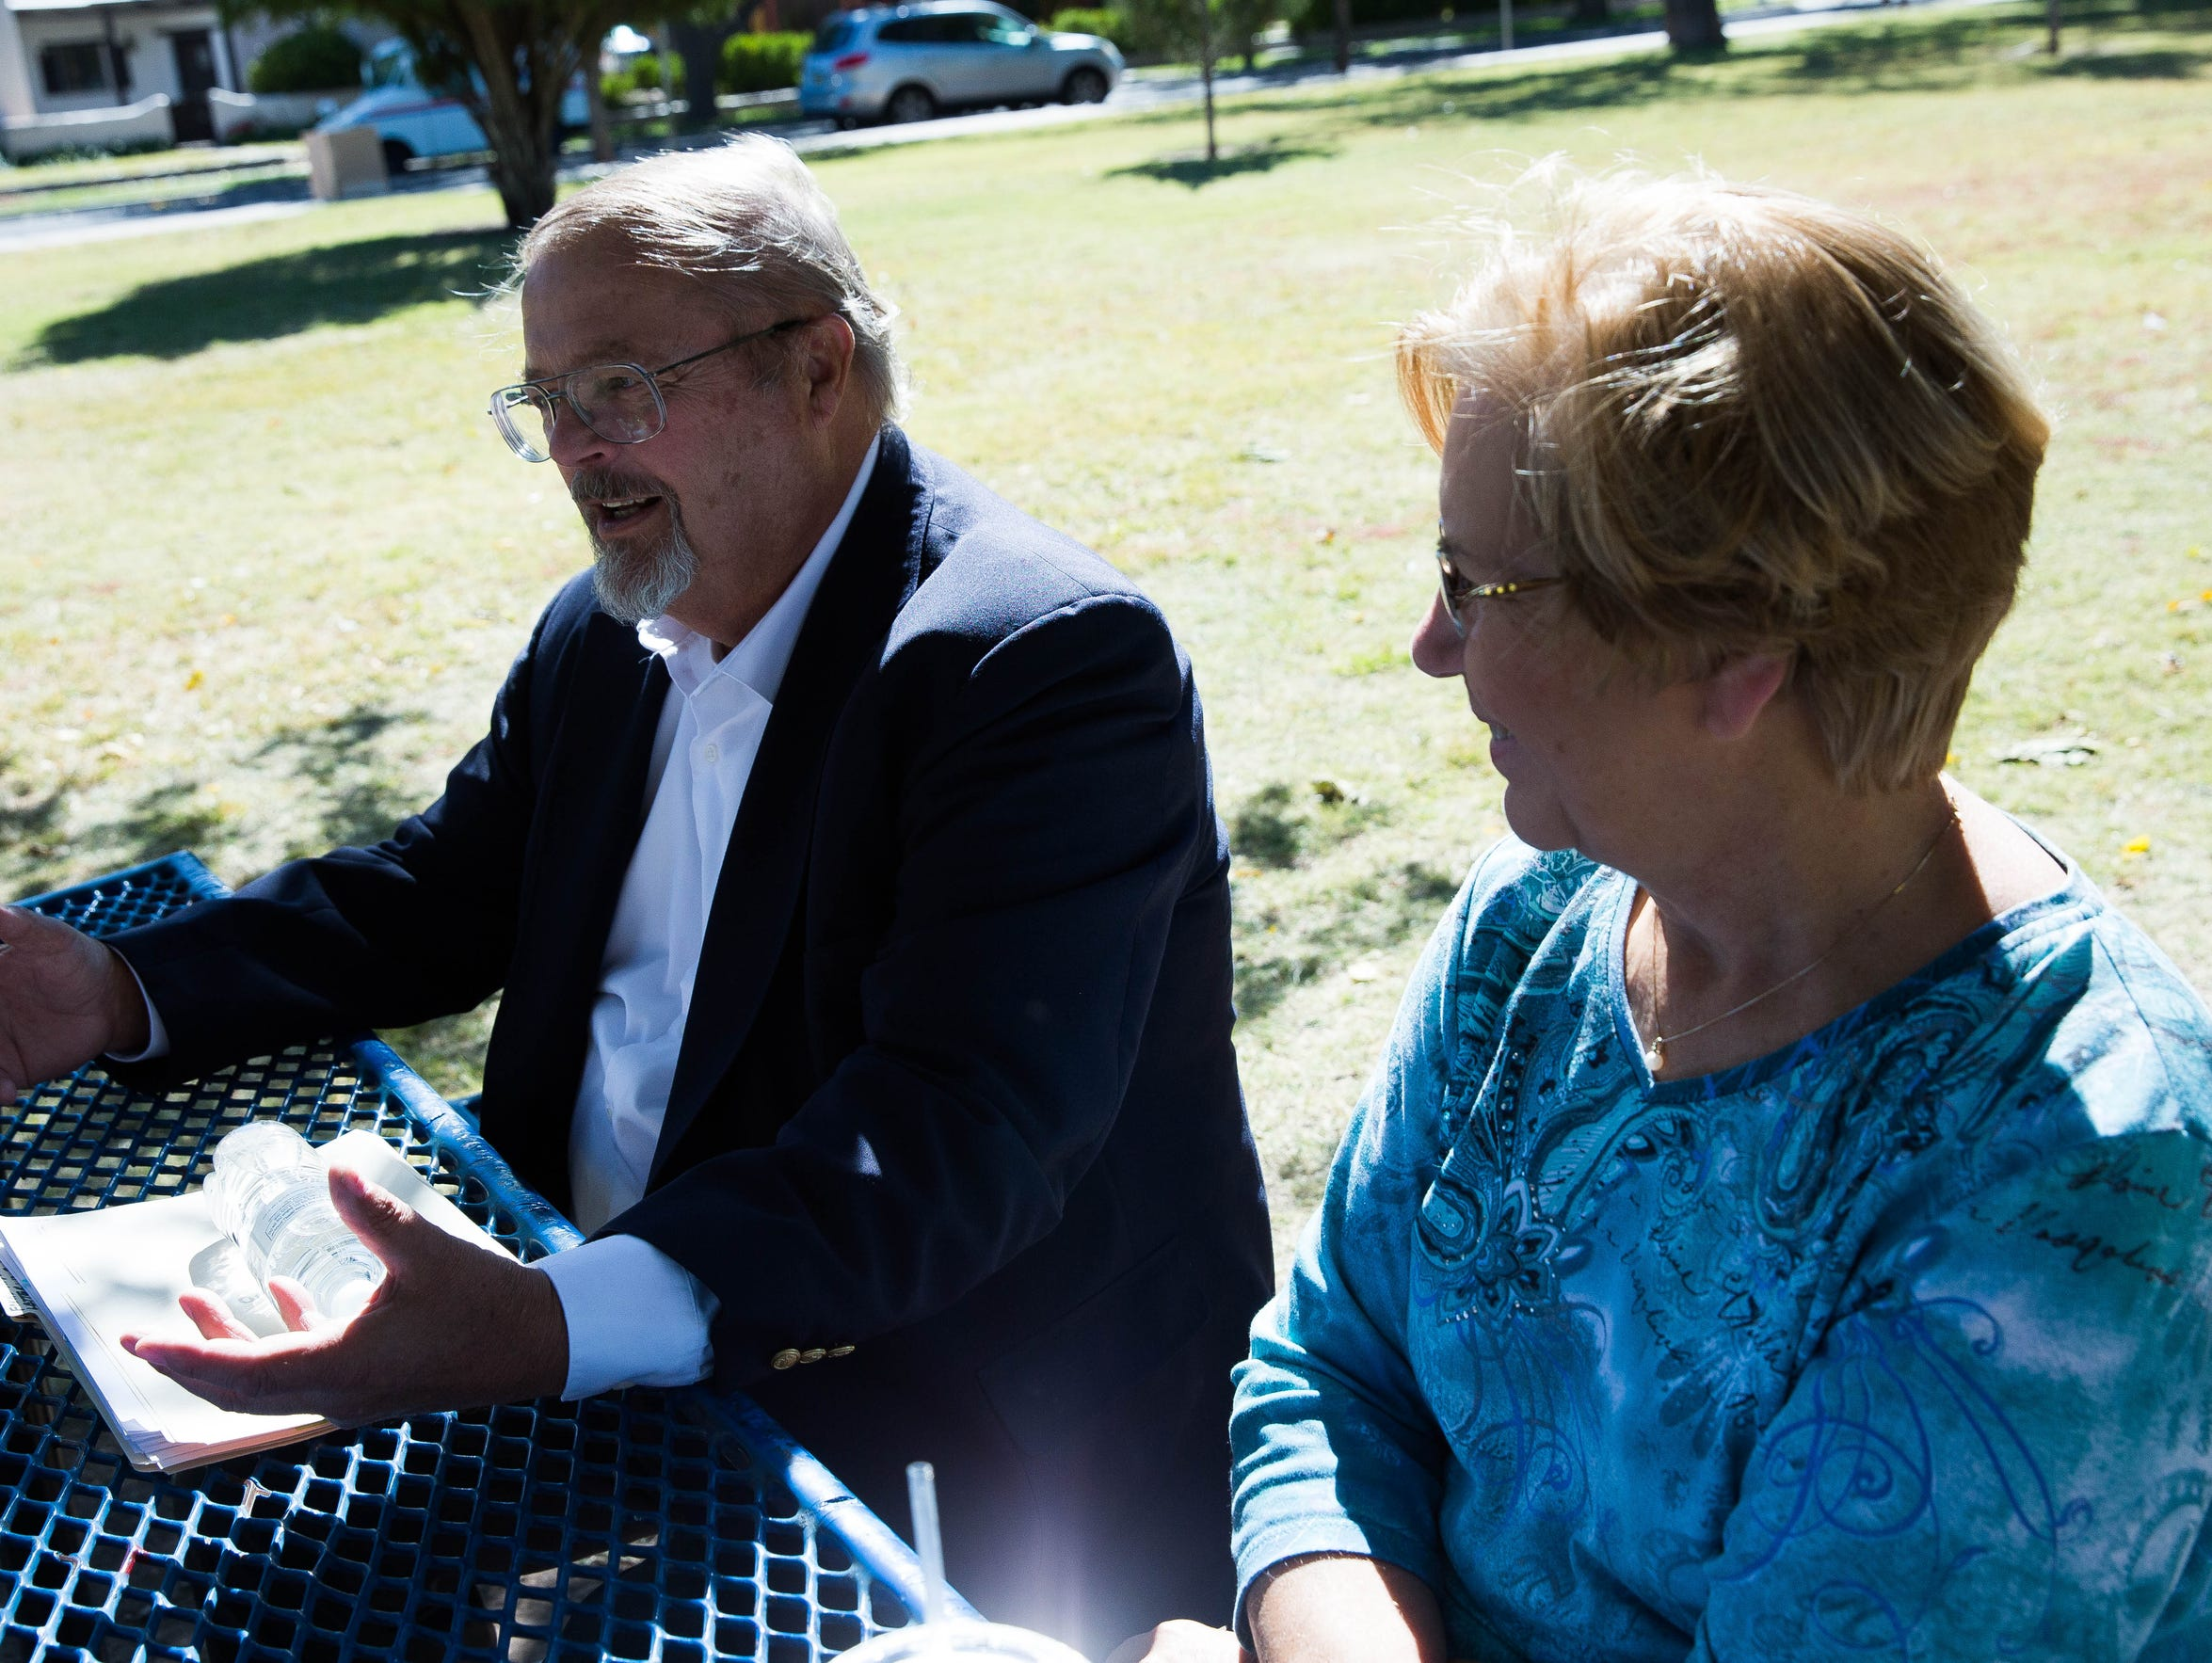 Fed Neumann, left, and his wife Kay Neumann, right, talk about what it's like to live with multiple chemical sensitivity at Pioneer Women's Park on Thursday, Nov. 2.